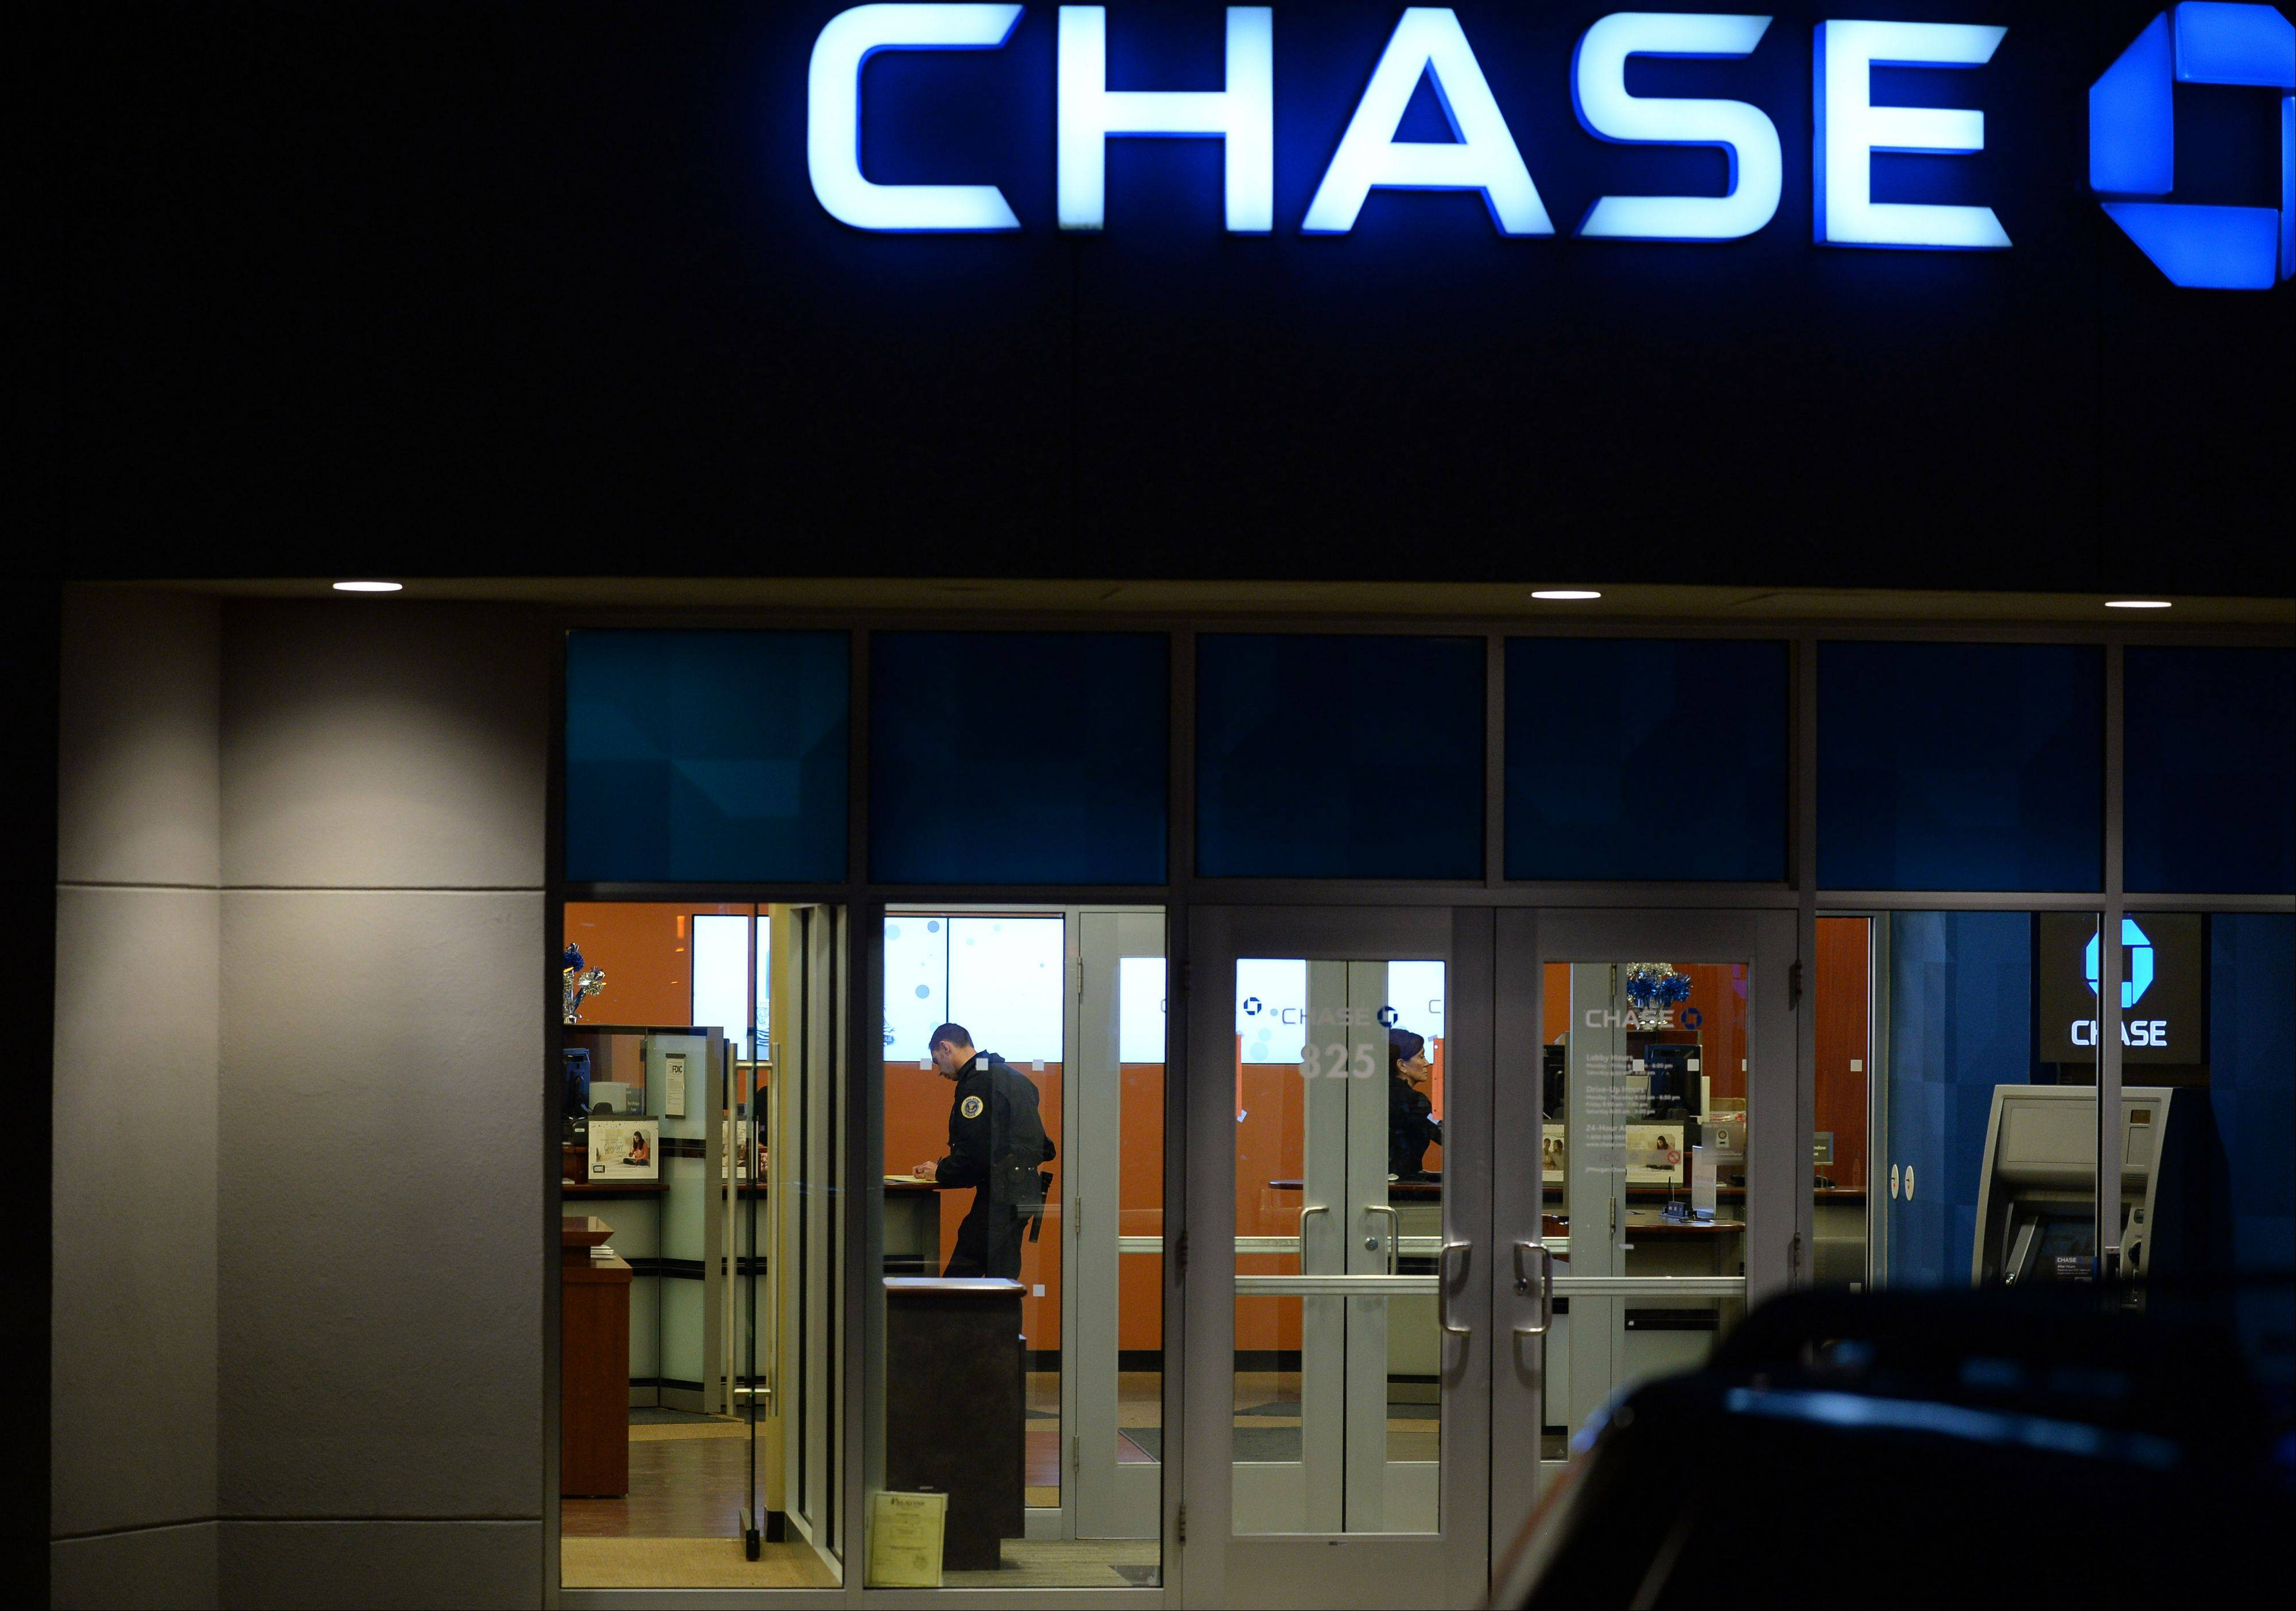 Palatine police take information from inside the Chase bank in Palatine after a bank robbery on Monday.